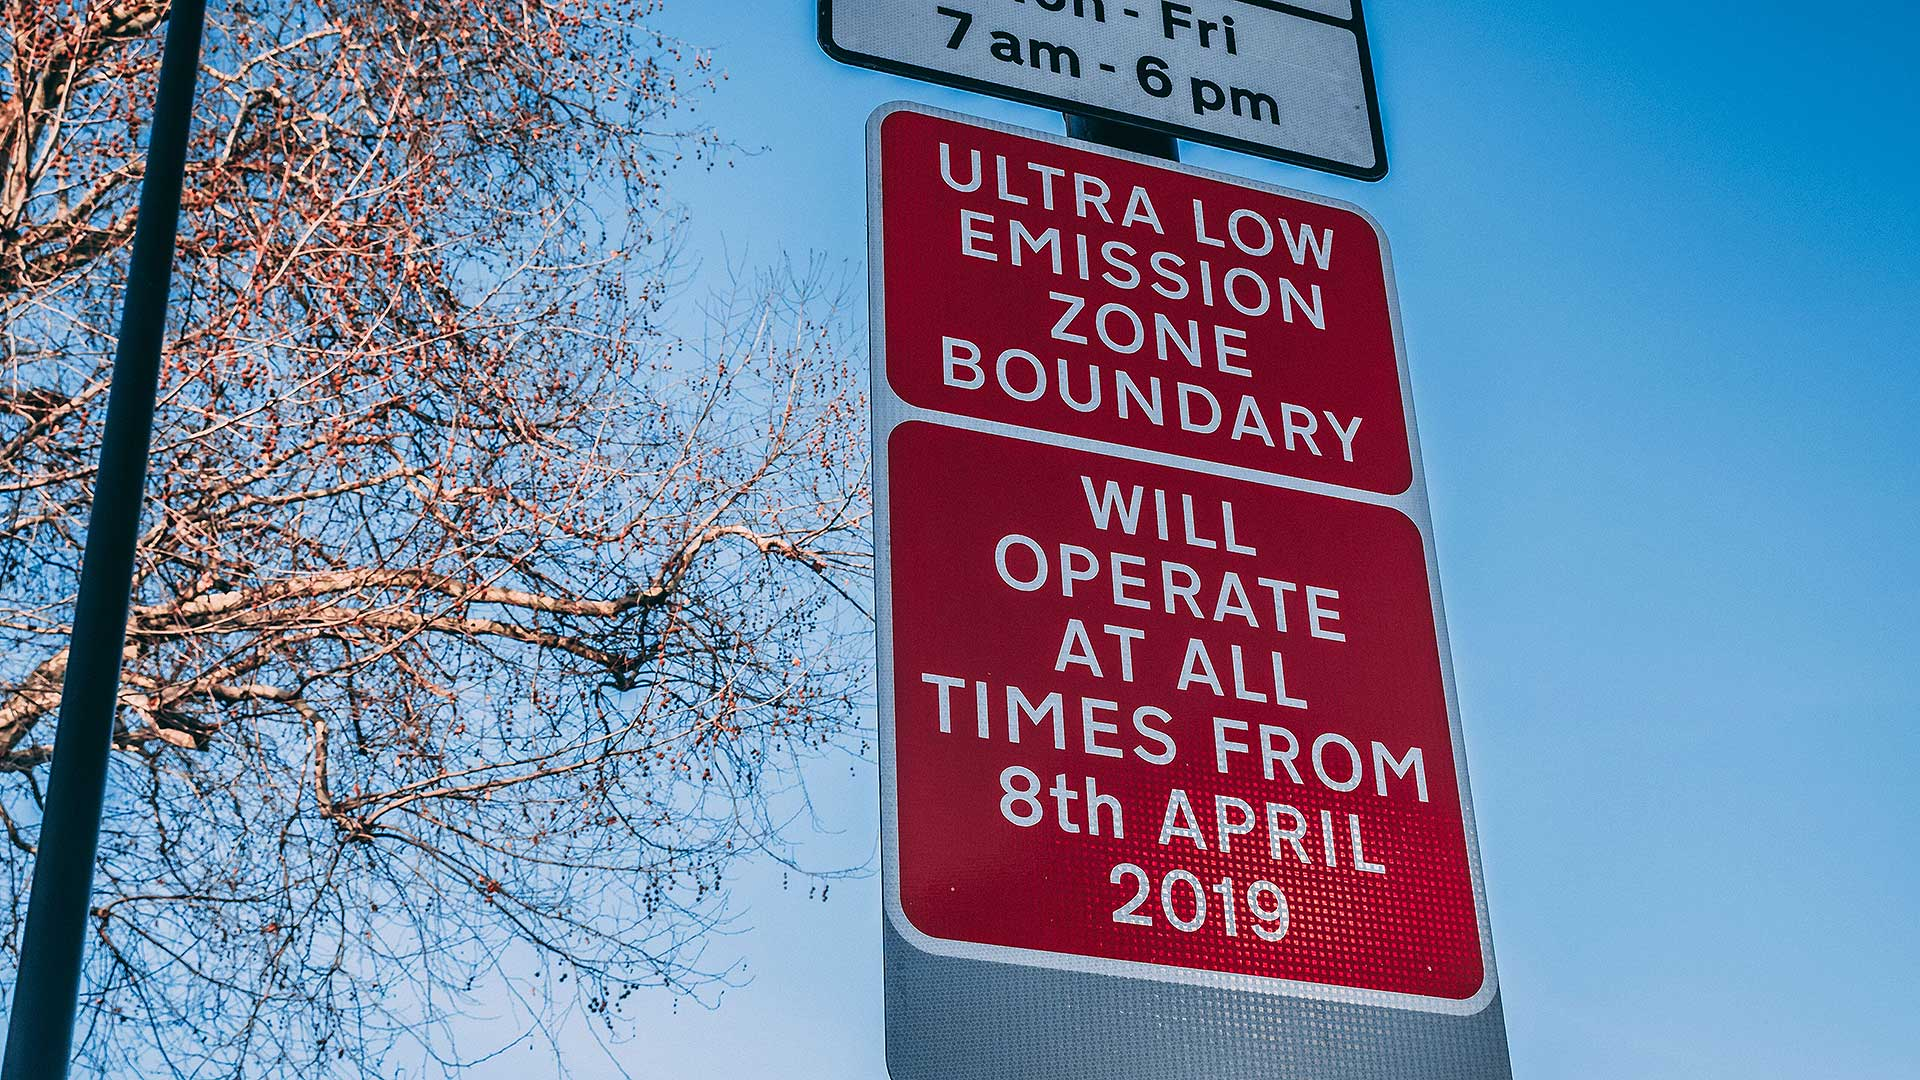 Ultra-Low Emission Zone introduced to London